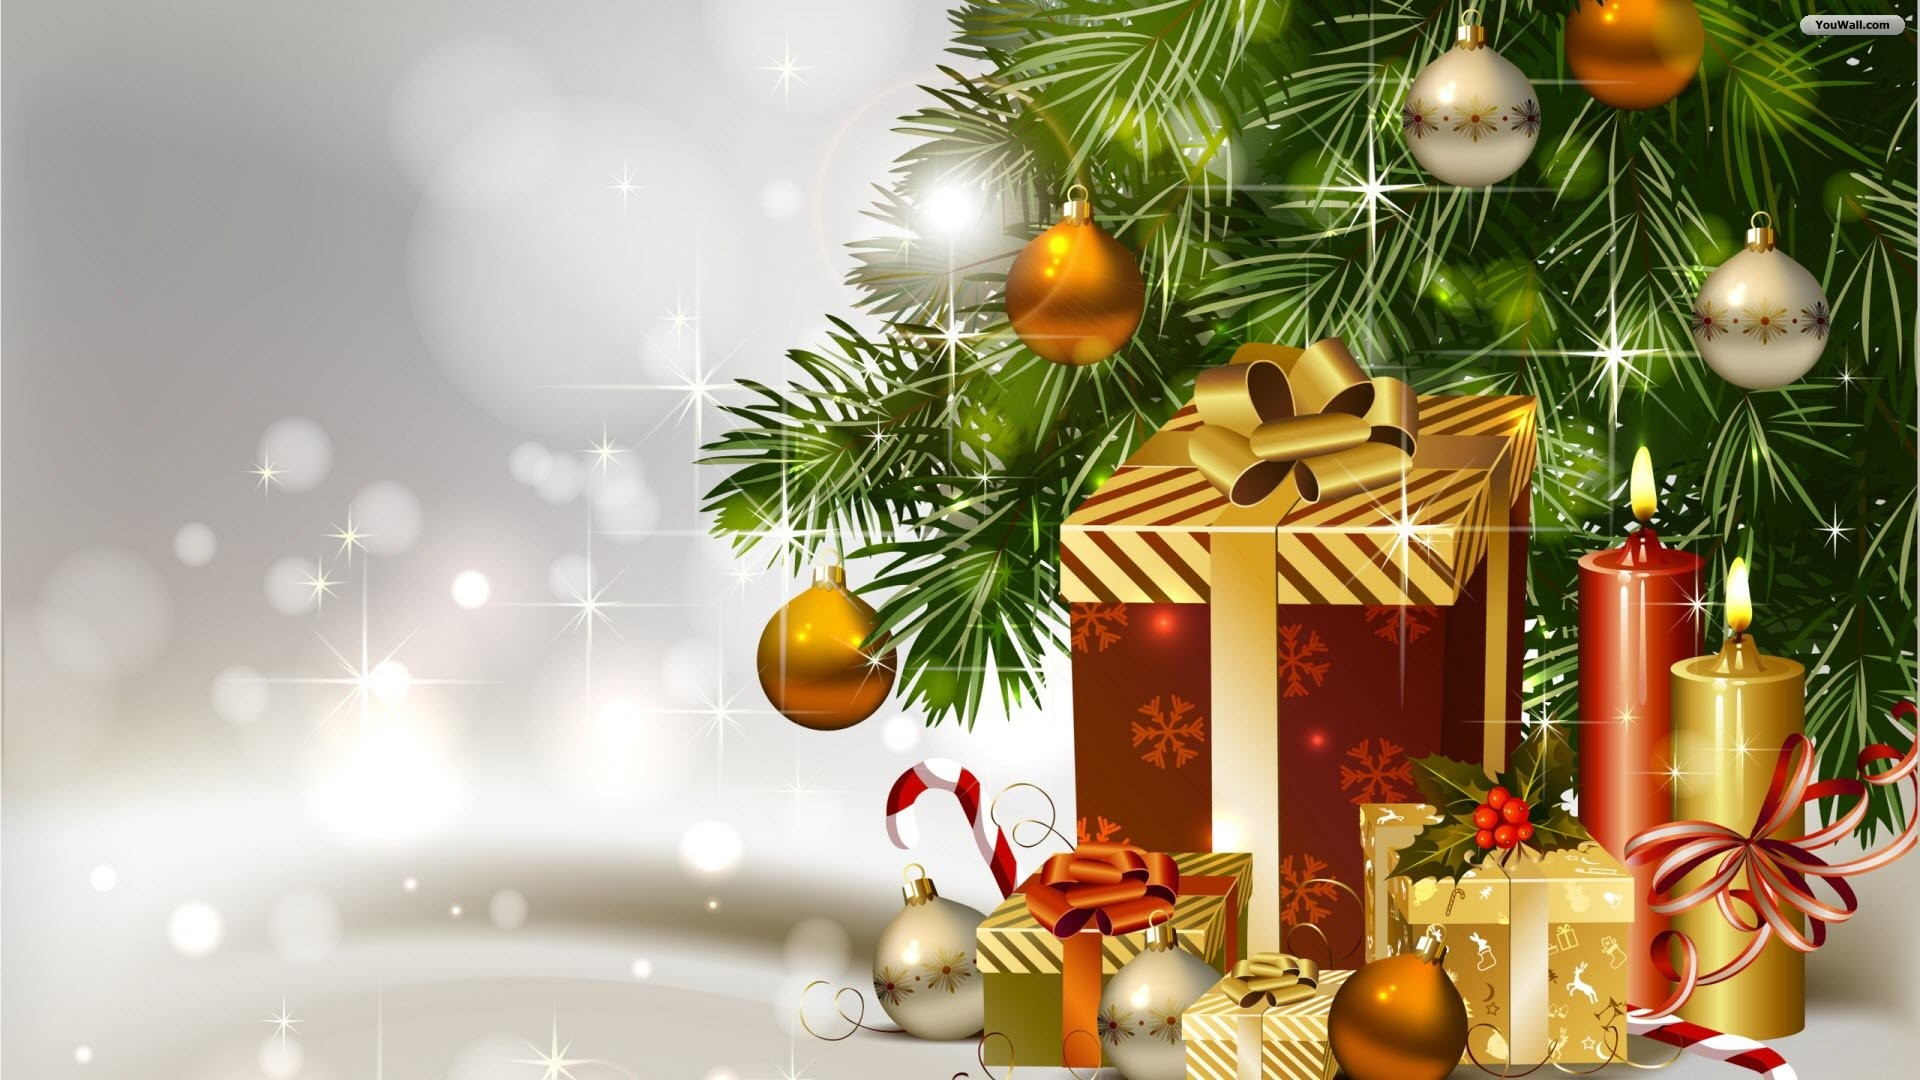 … hd wallpaper pictures; christmas tree background wallpaper …